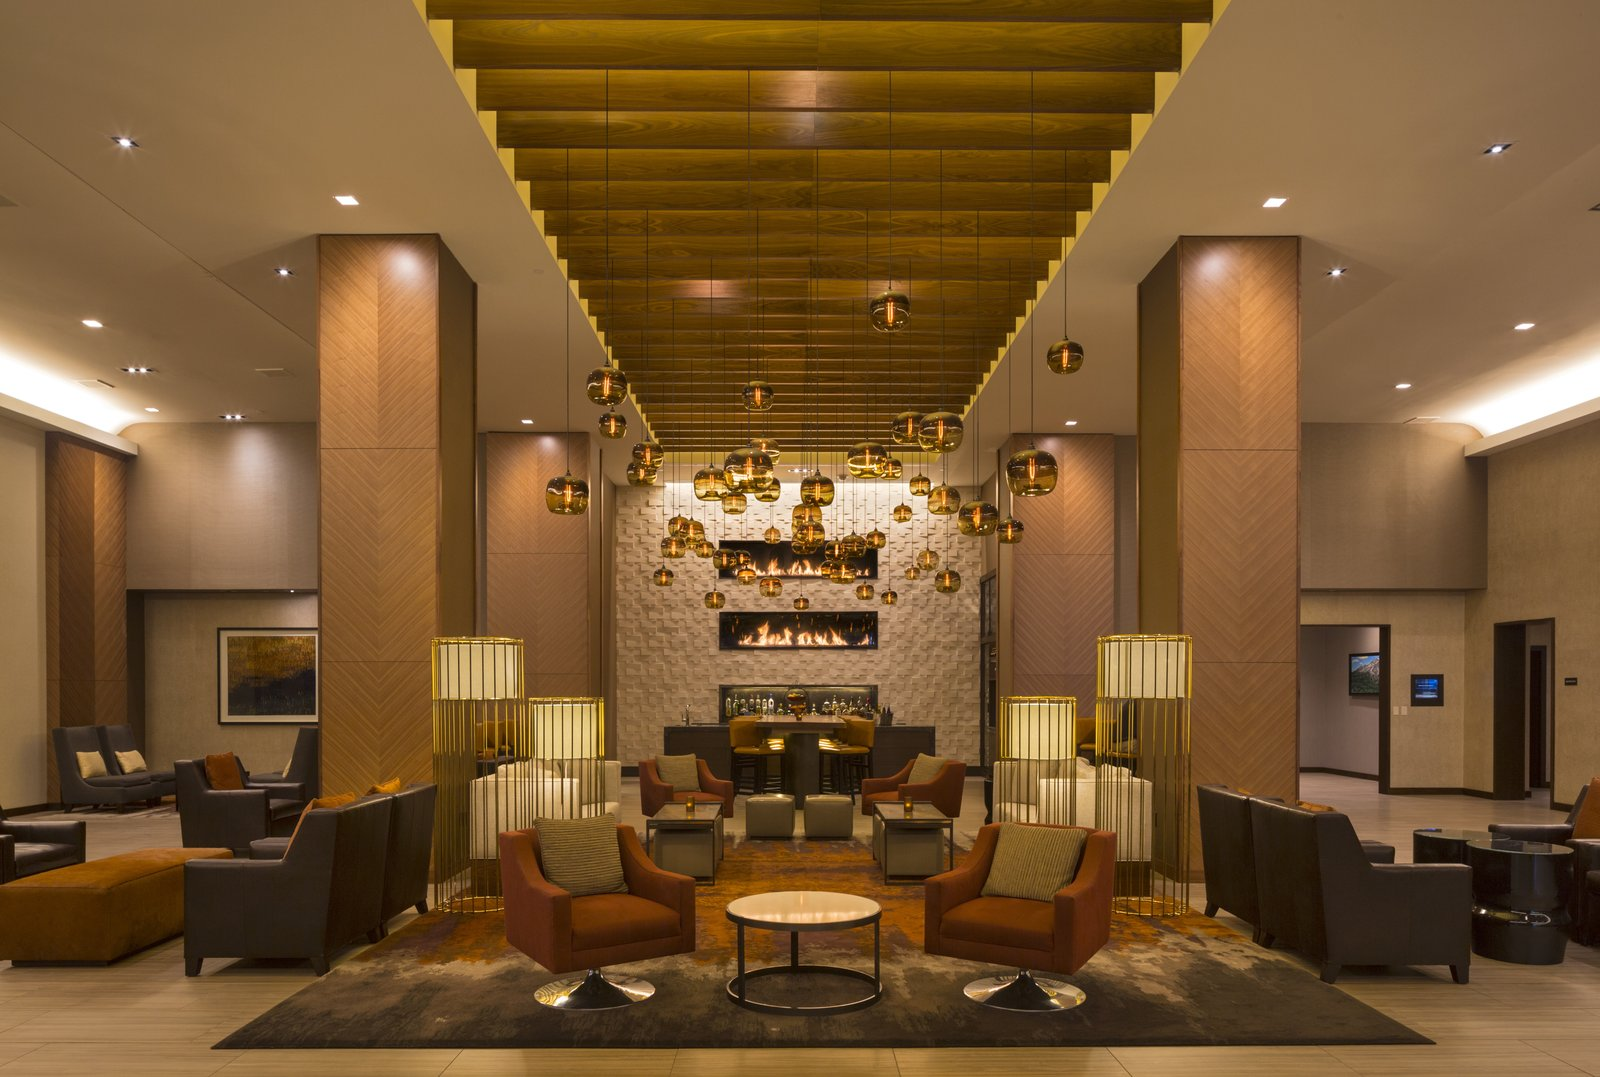 Downtown Denver Hyatt Warms Up With Modern Hotel Lighting